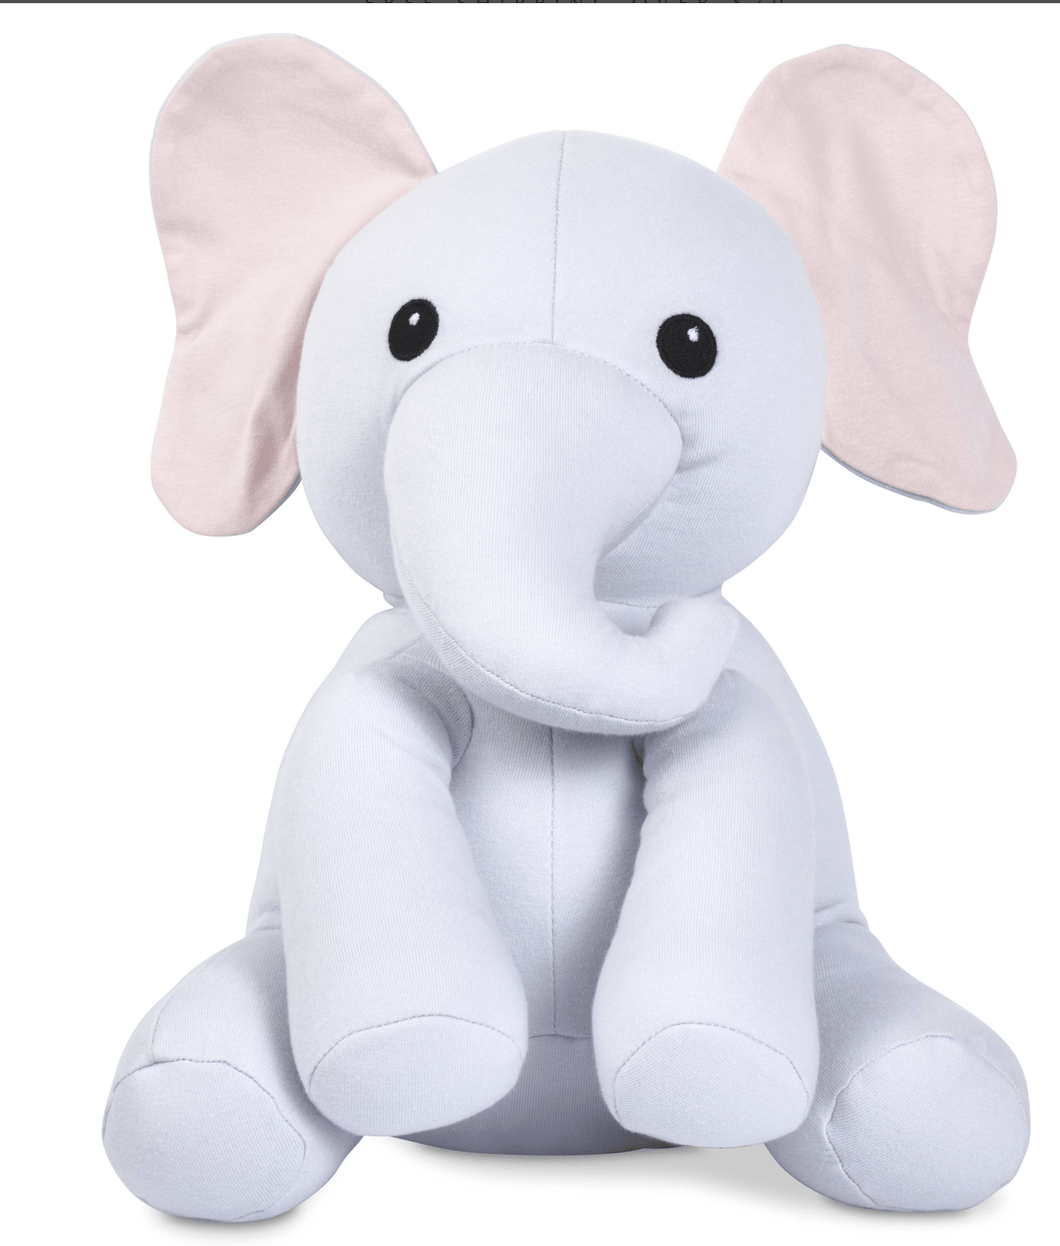 Edmund the Elephant - Make Me Yours Toy Studio